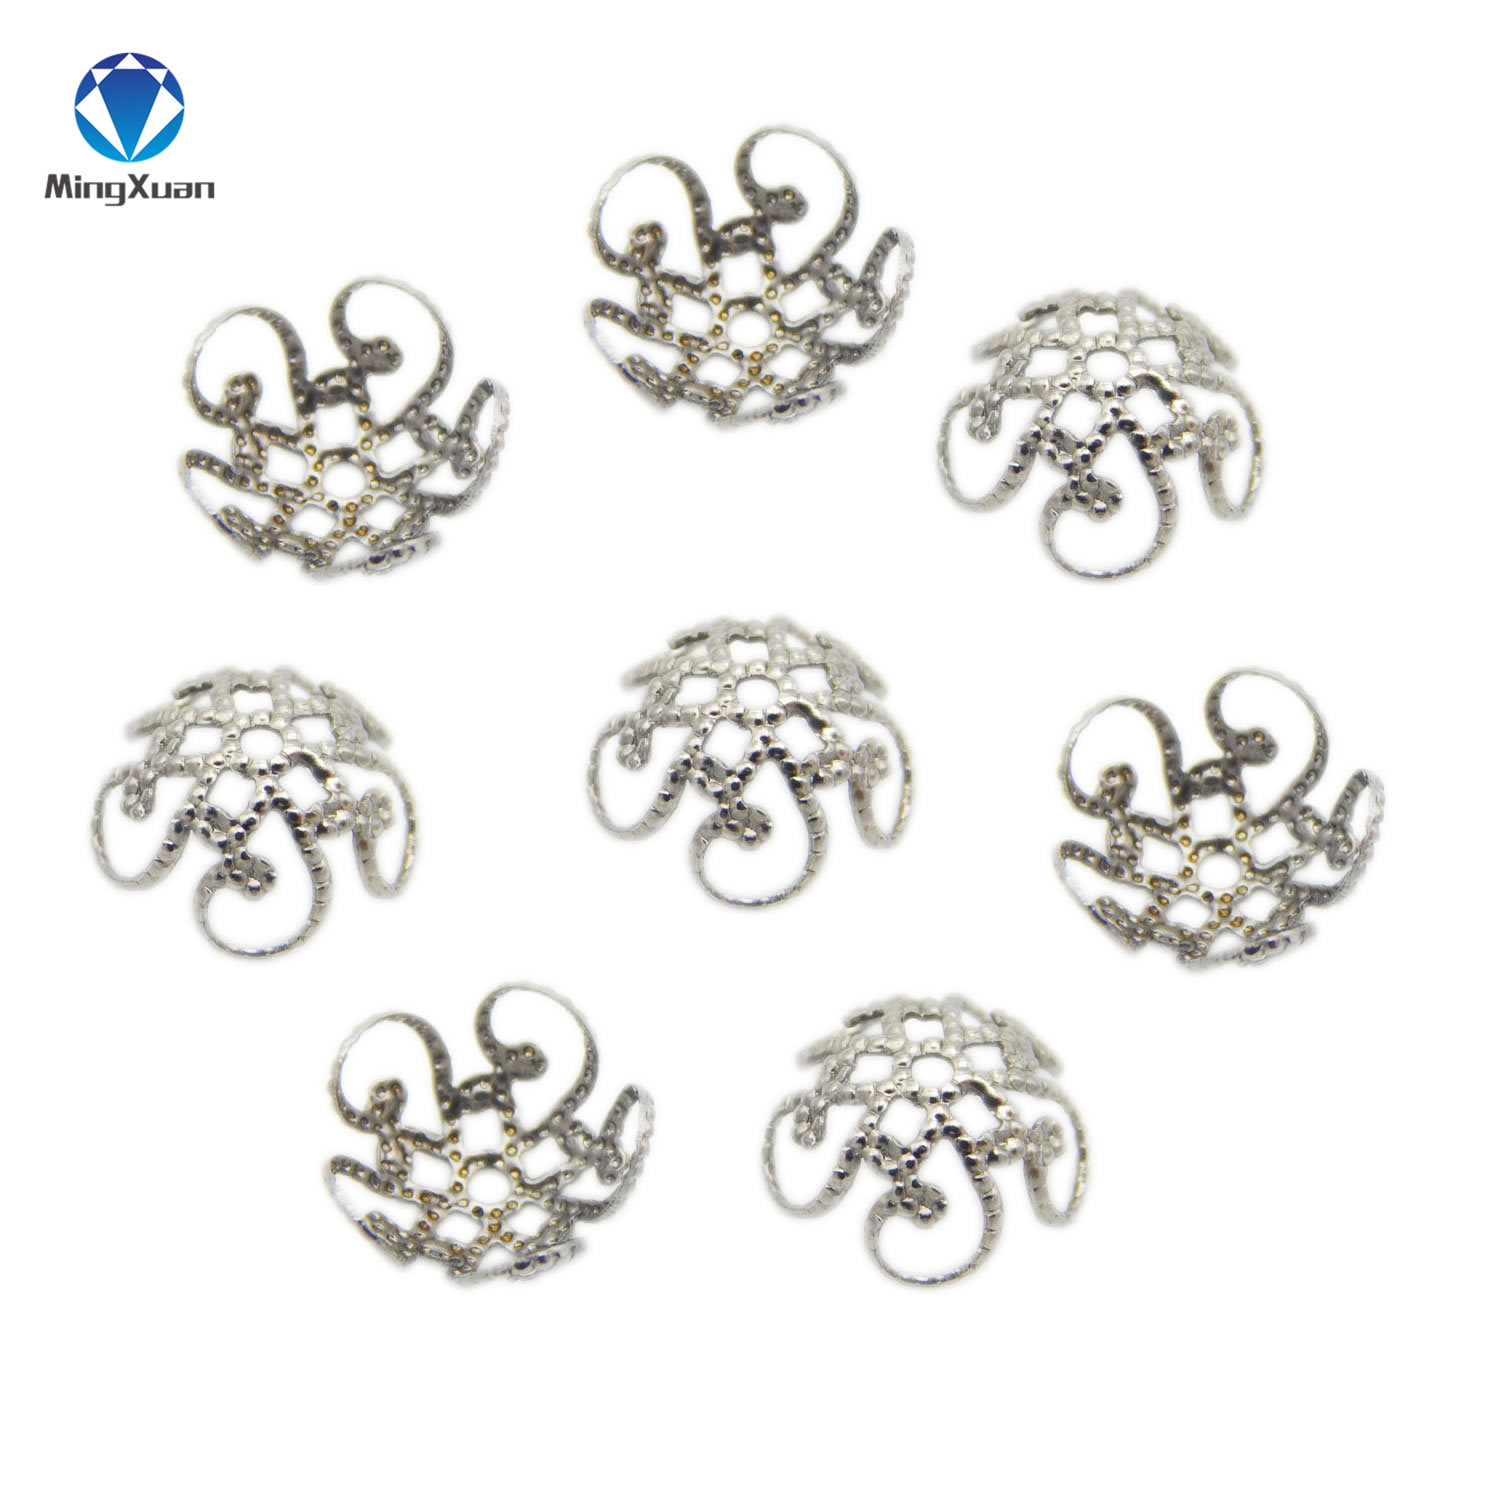 50pcs/lot 8/10mm Stainless Steel Silver Tone Flower End Caps Metal Filigree Charm Spacer Beads for DIY Jewelry Making Findings